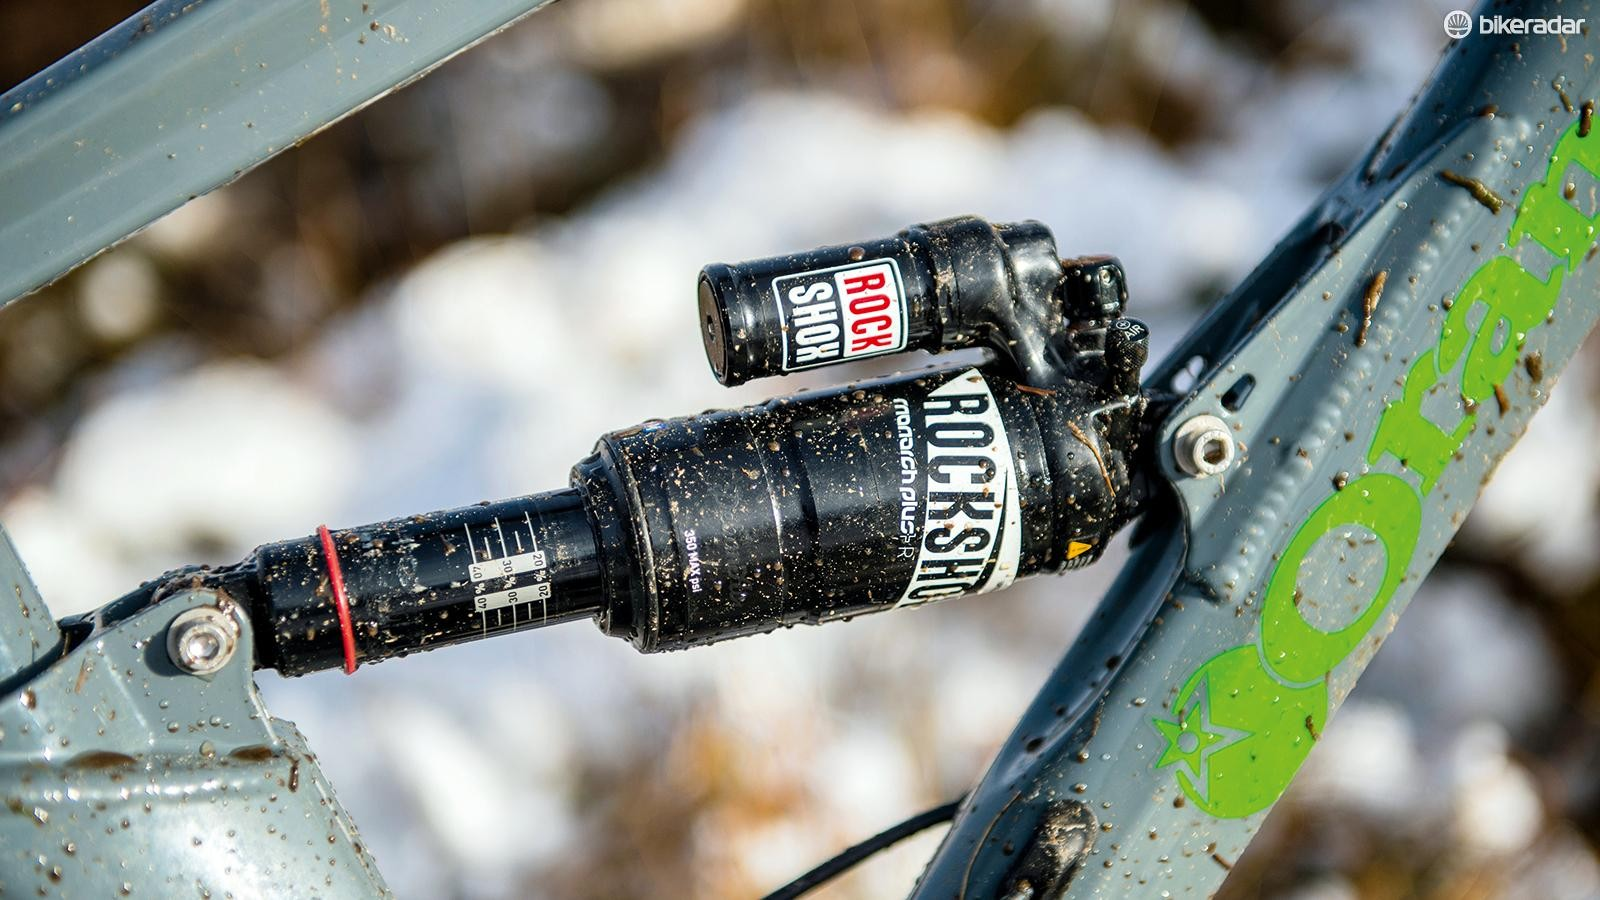 There's no lockout on the Monarch Plus Debonair rear shock